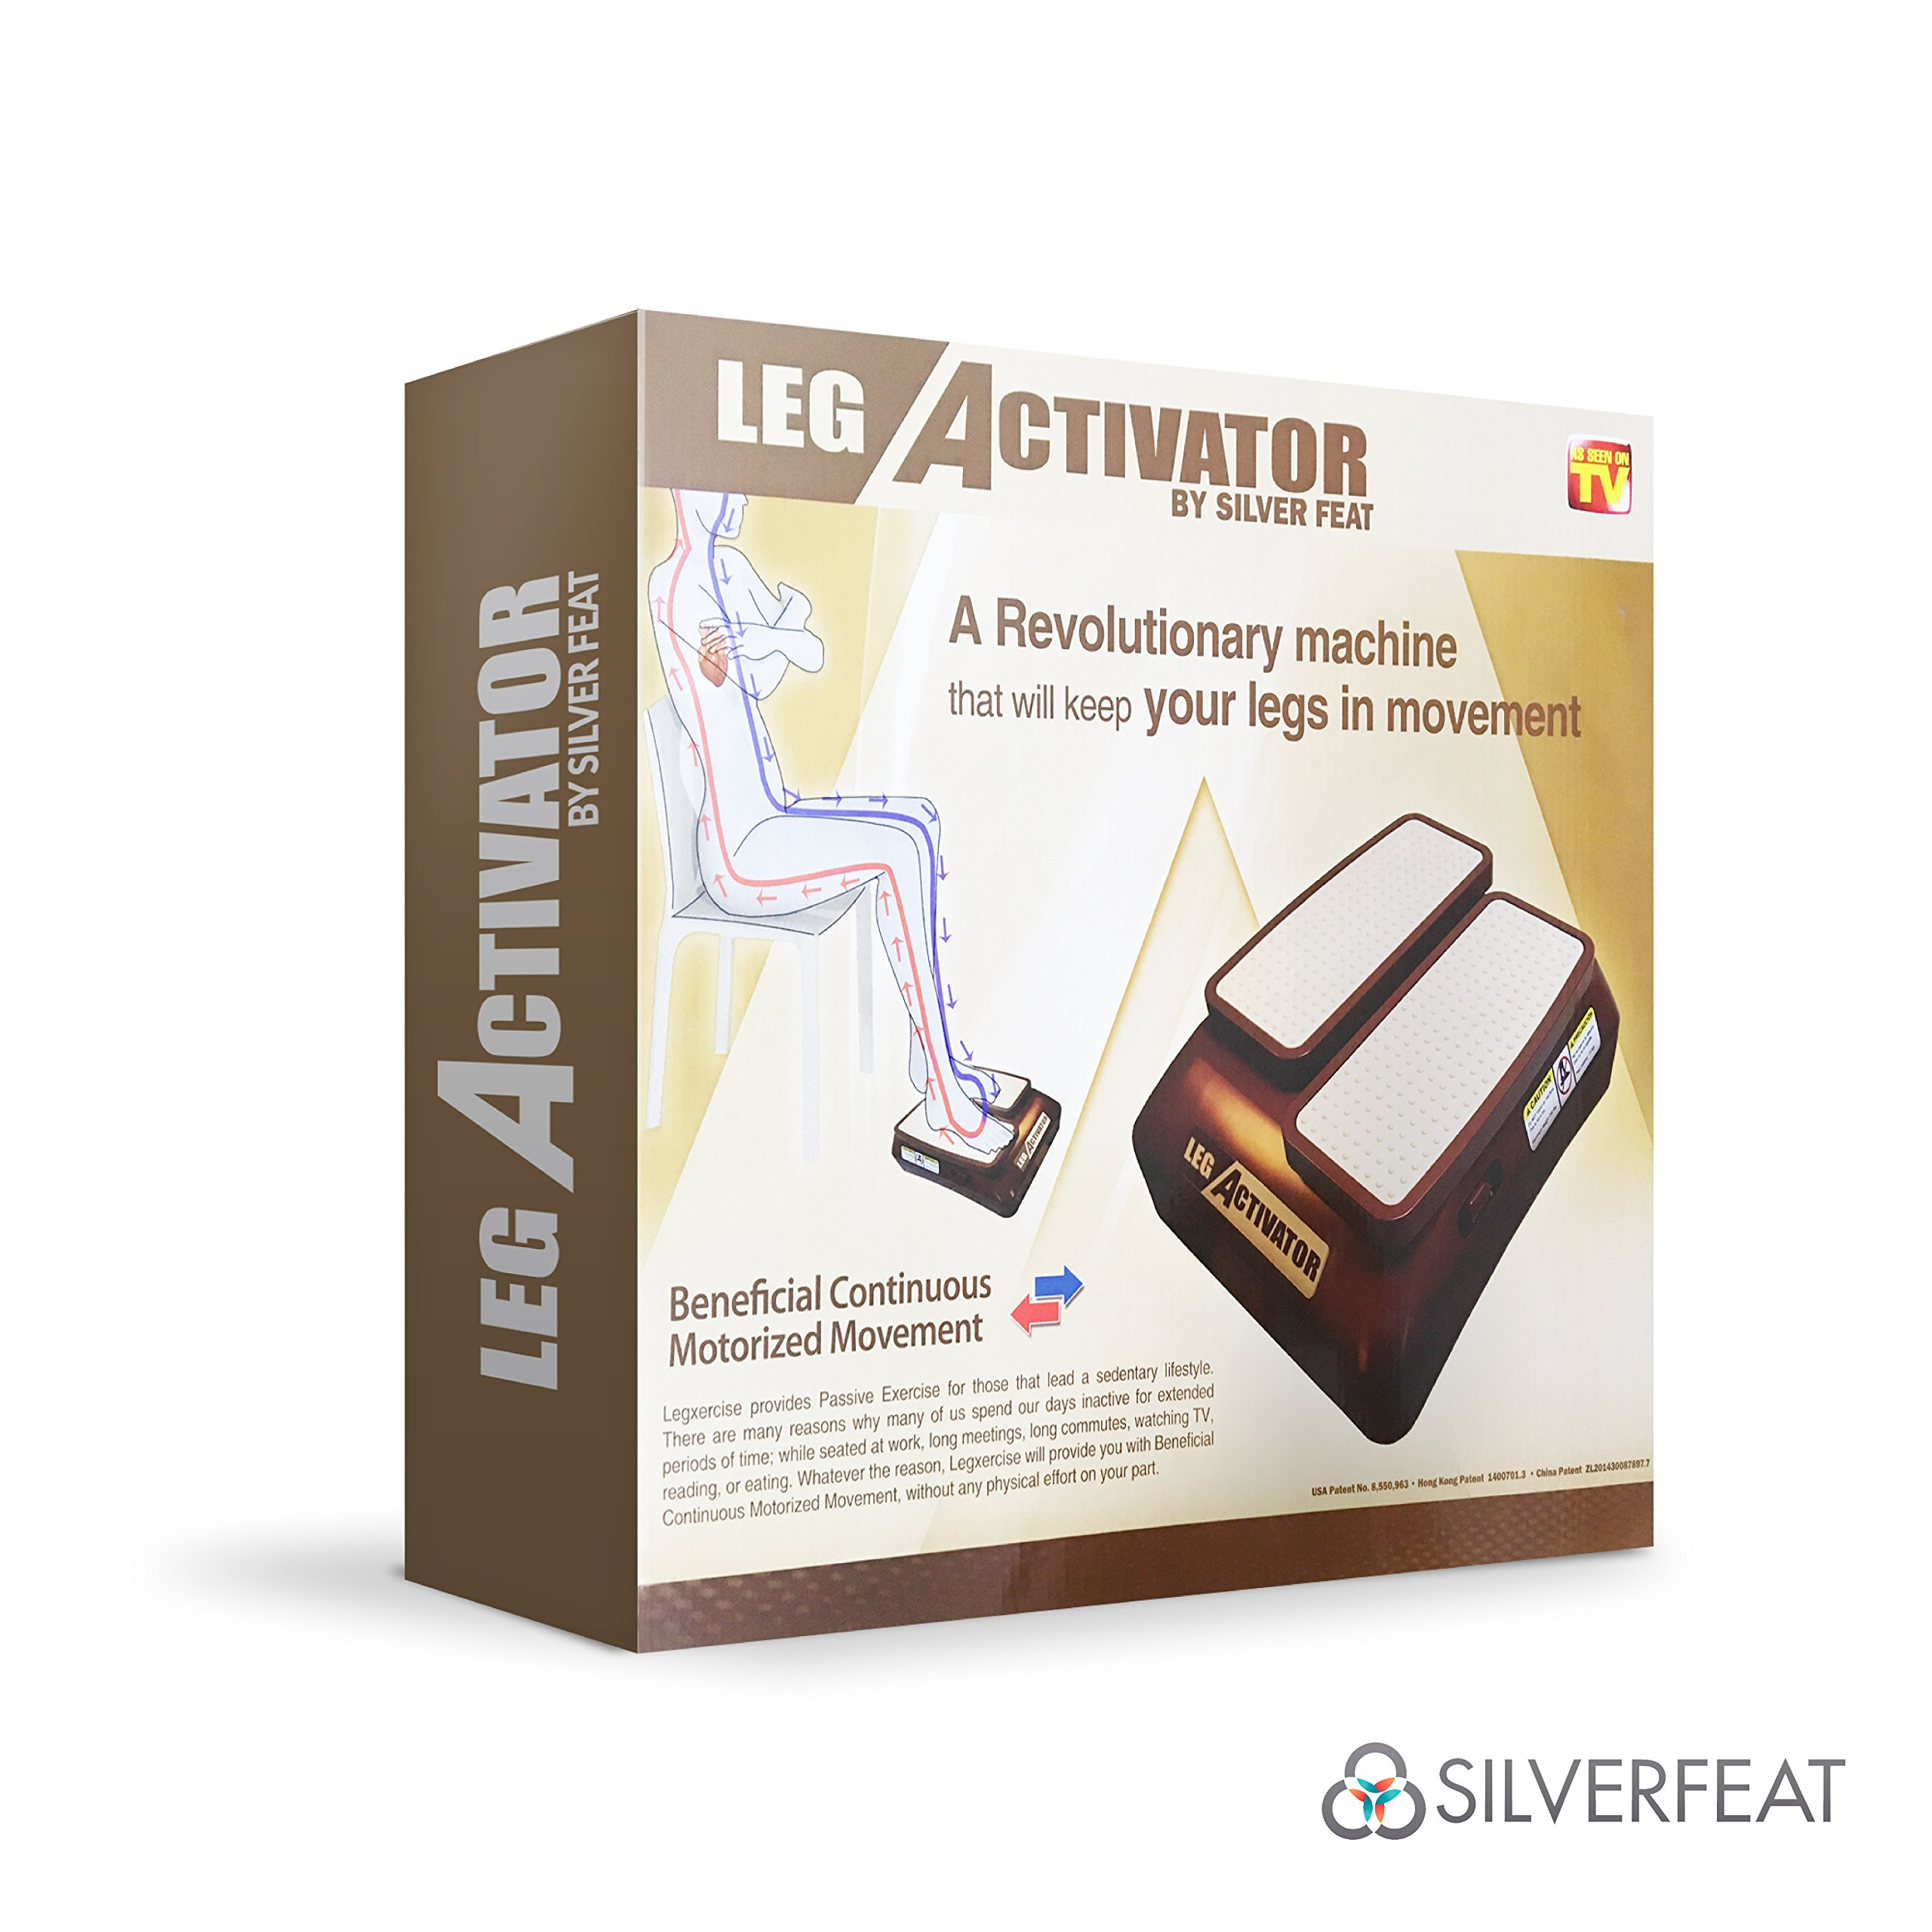 LegActivator - The Seated Leg Exerciser & Physiotherapy Machine for Seniors that Improves your Health and Blood Circulation while Sitting in the Comfort of your Home or Office by Silverfeat (Image #9)